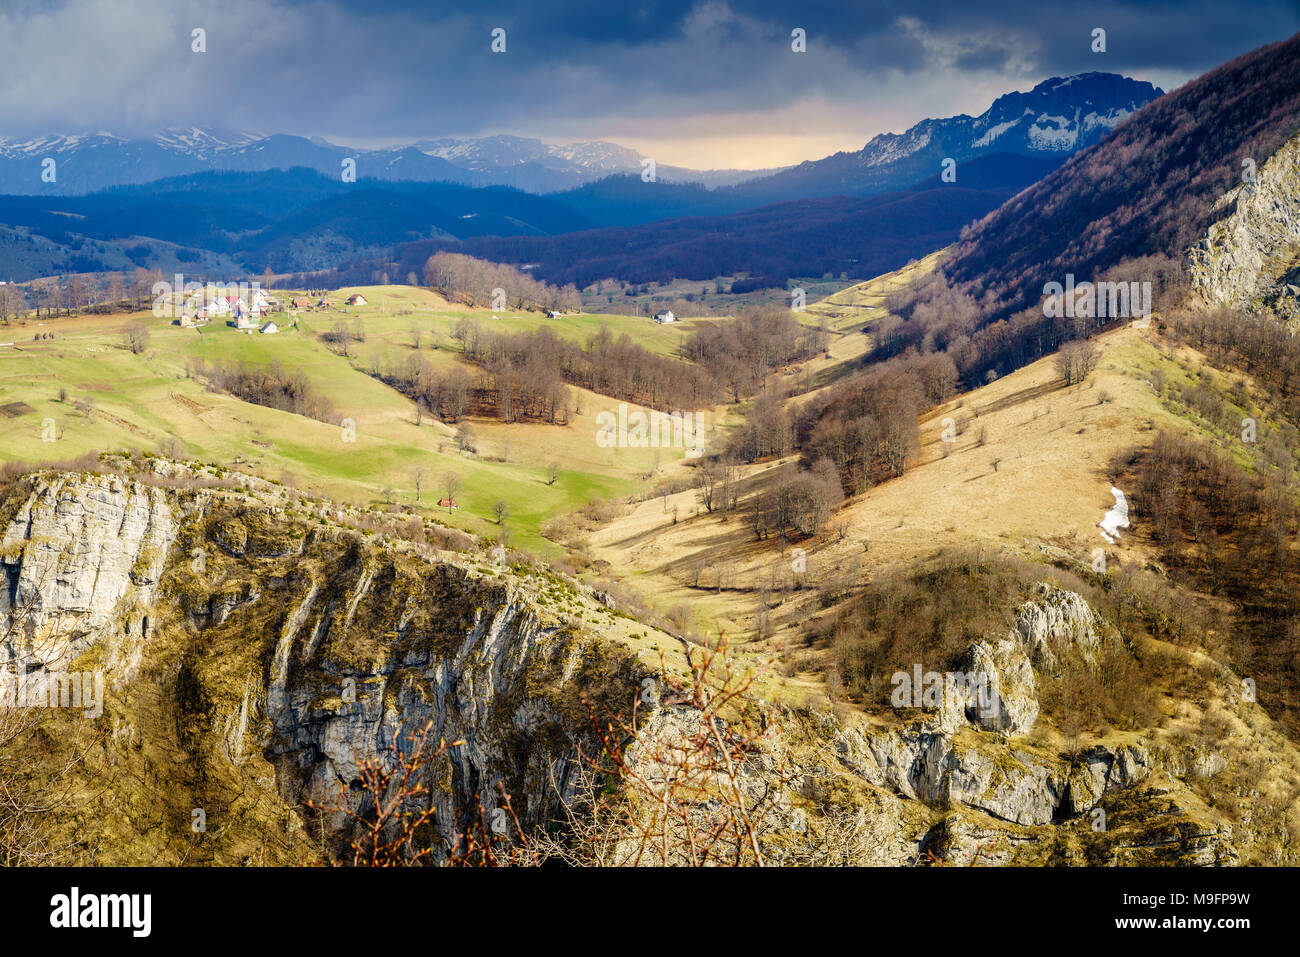 Scenic view of Dinaric Alps in Bosnia-Herzegovina near Sarajevo Stock Photo